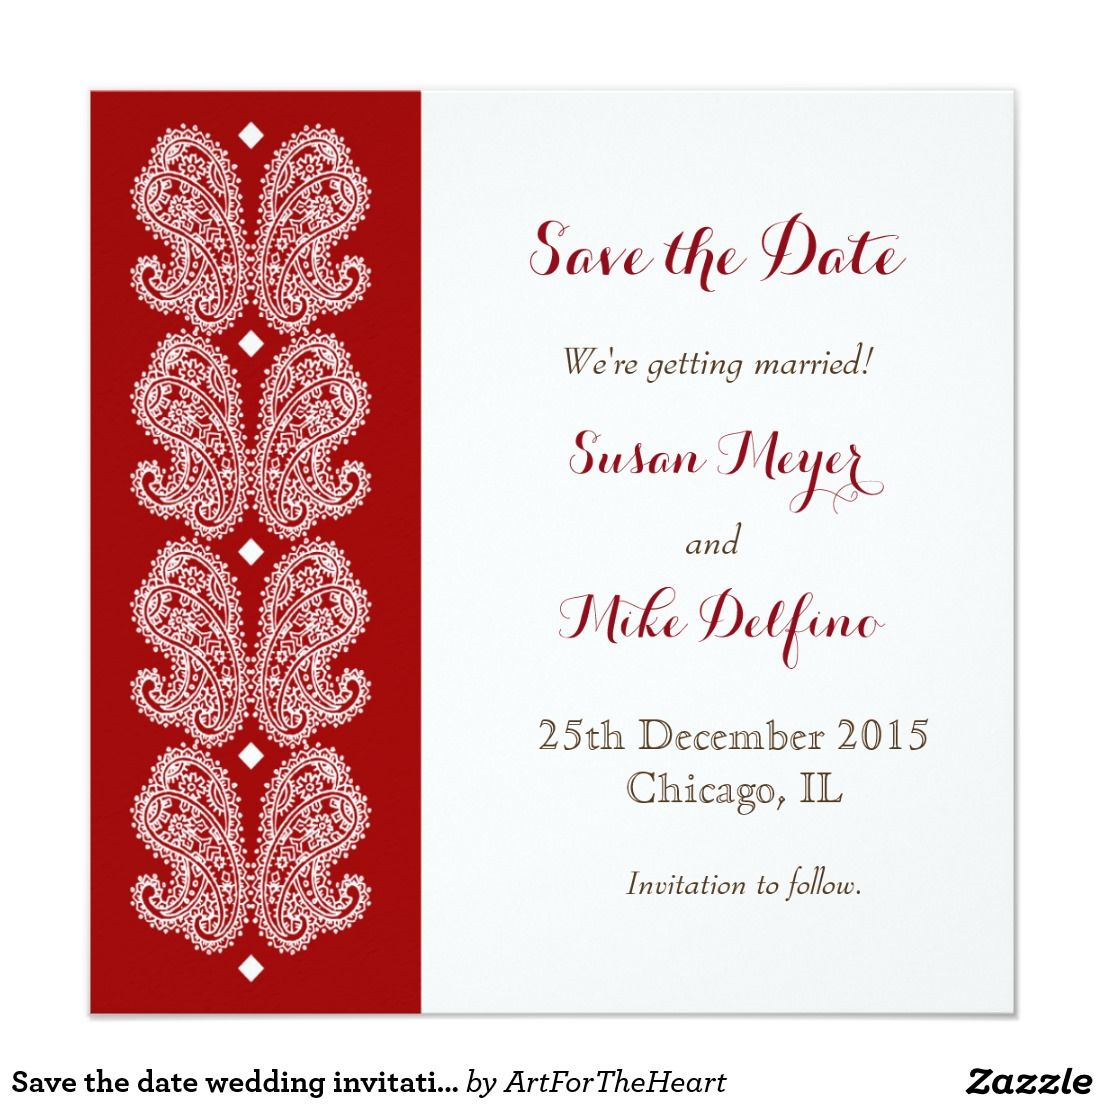 Save the date wedding invitation card paisley red | Save the date ...